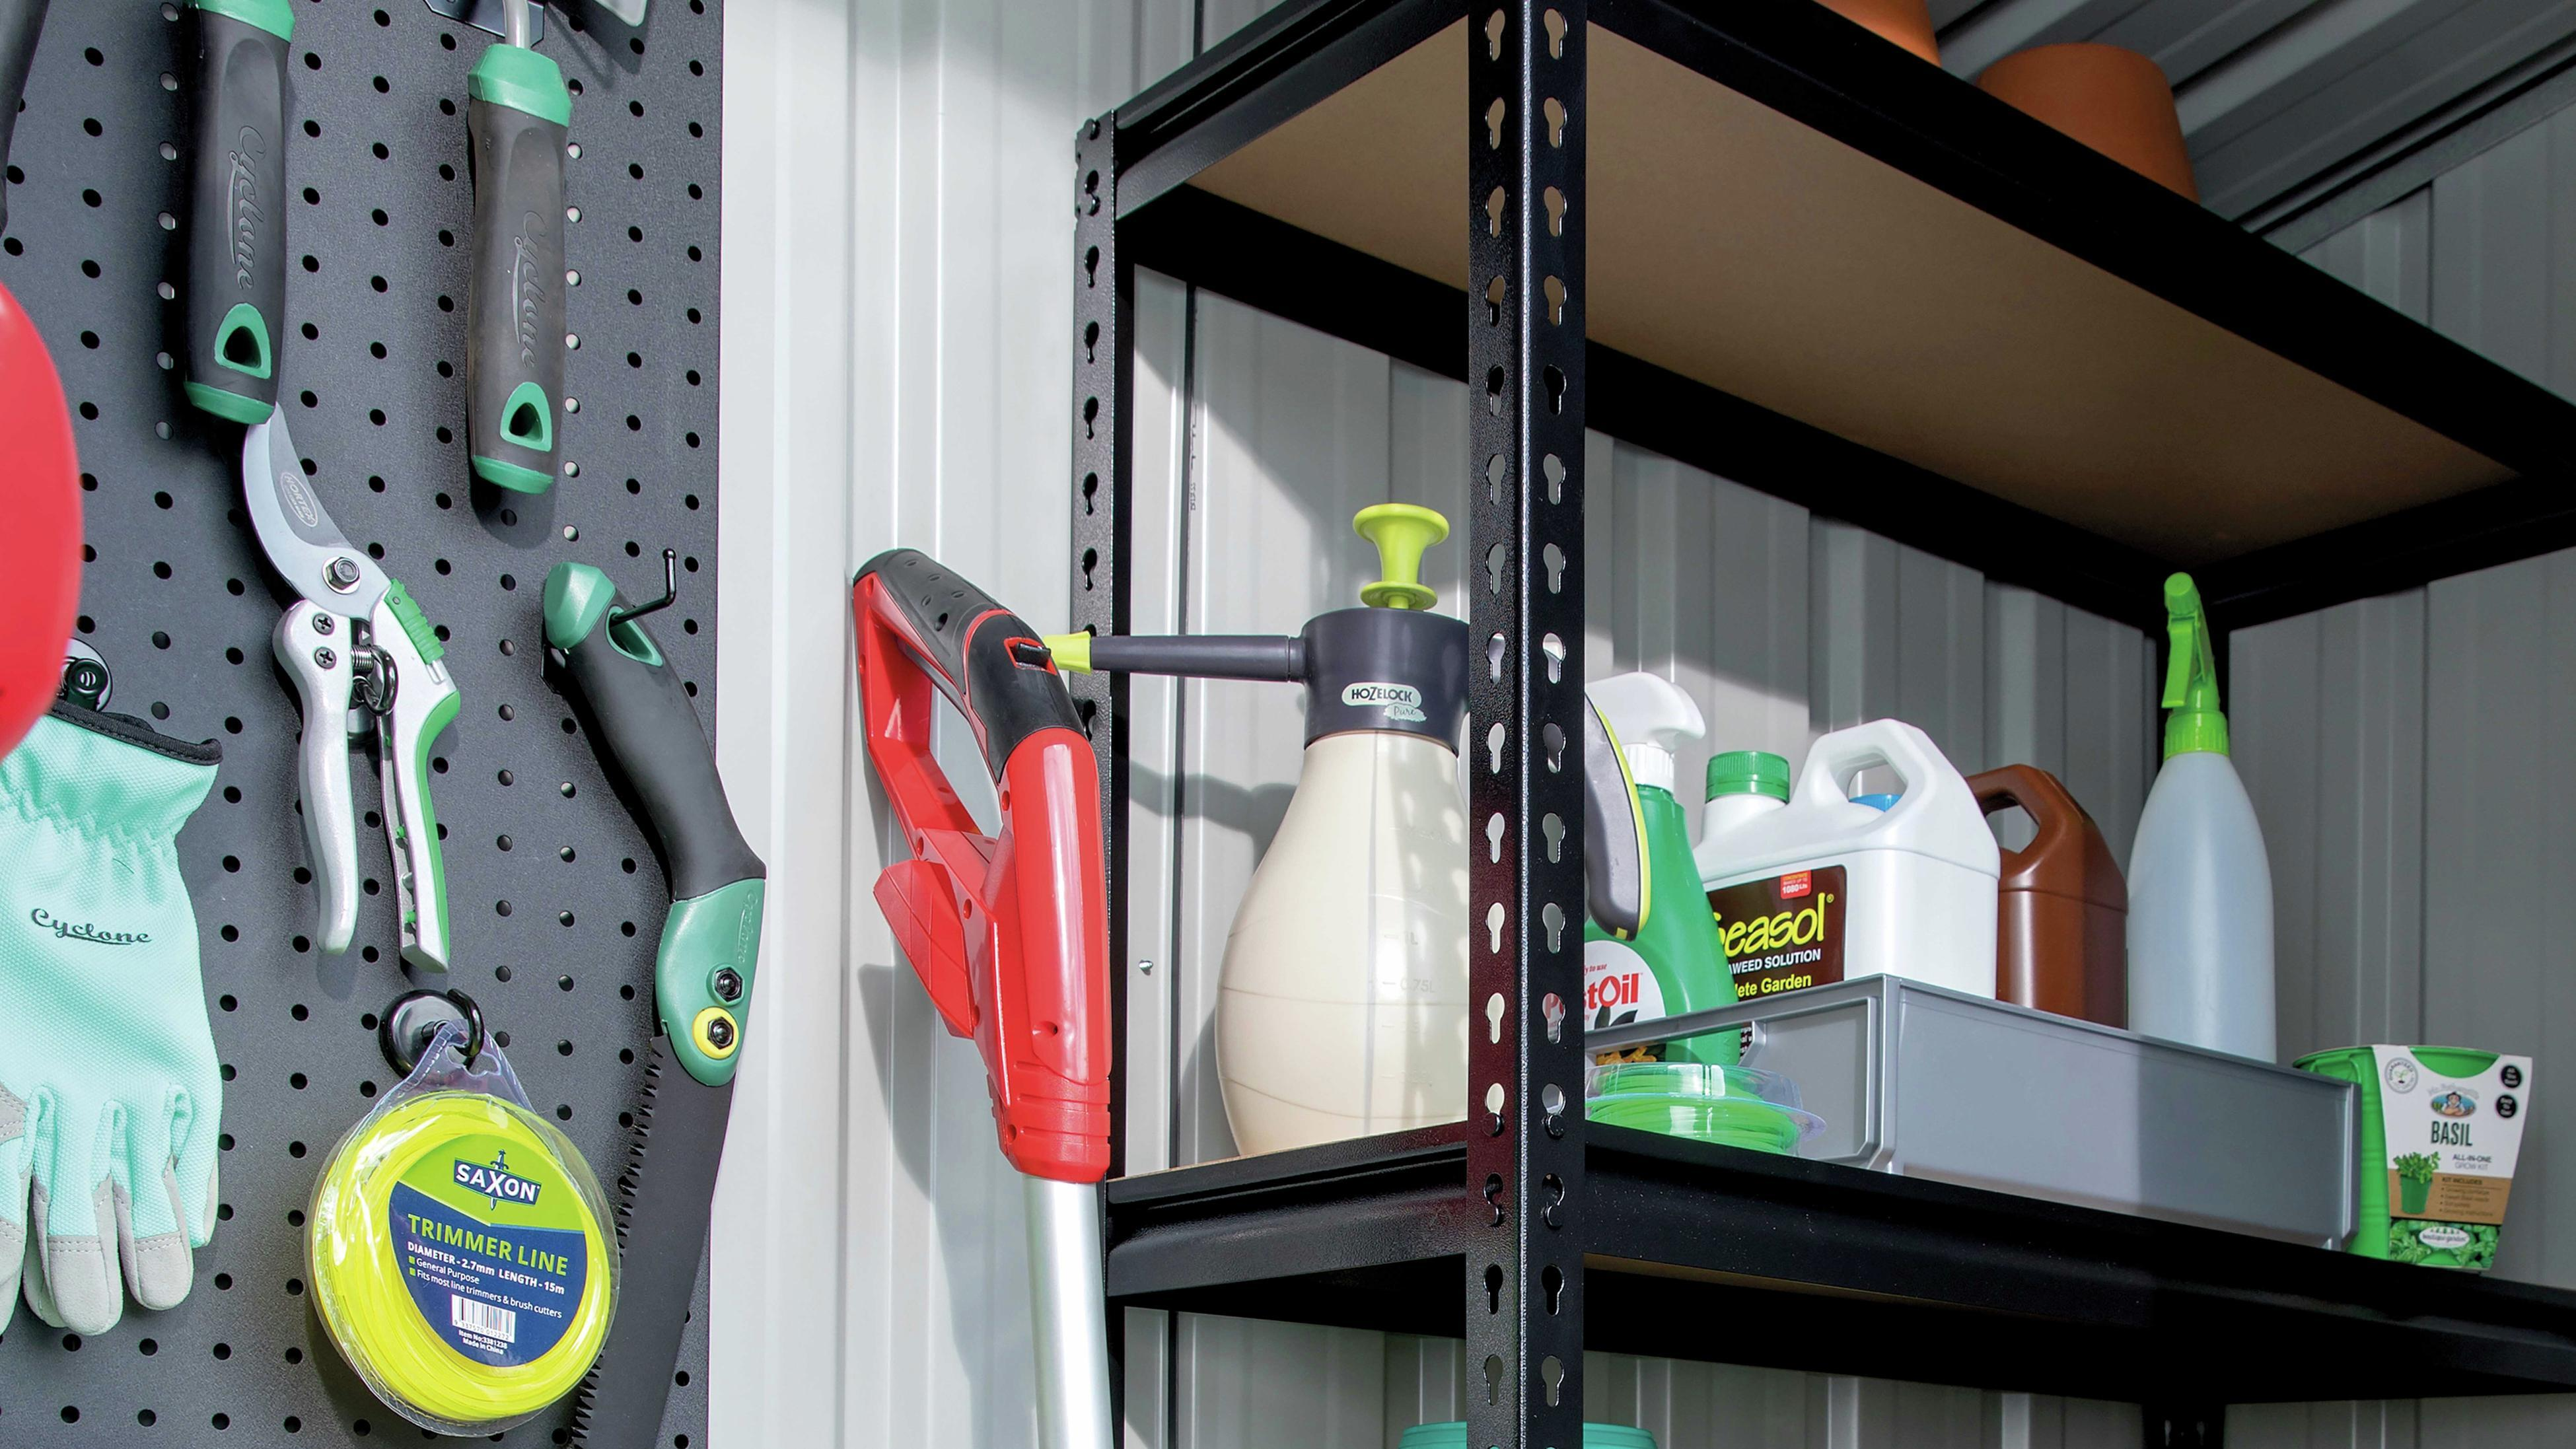 Garage shelving and peg board with garden supplies and tools